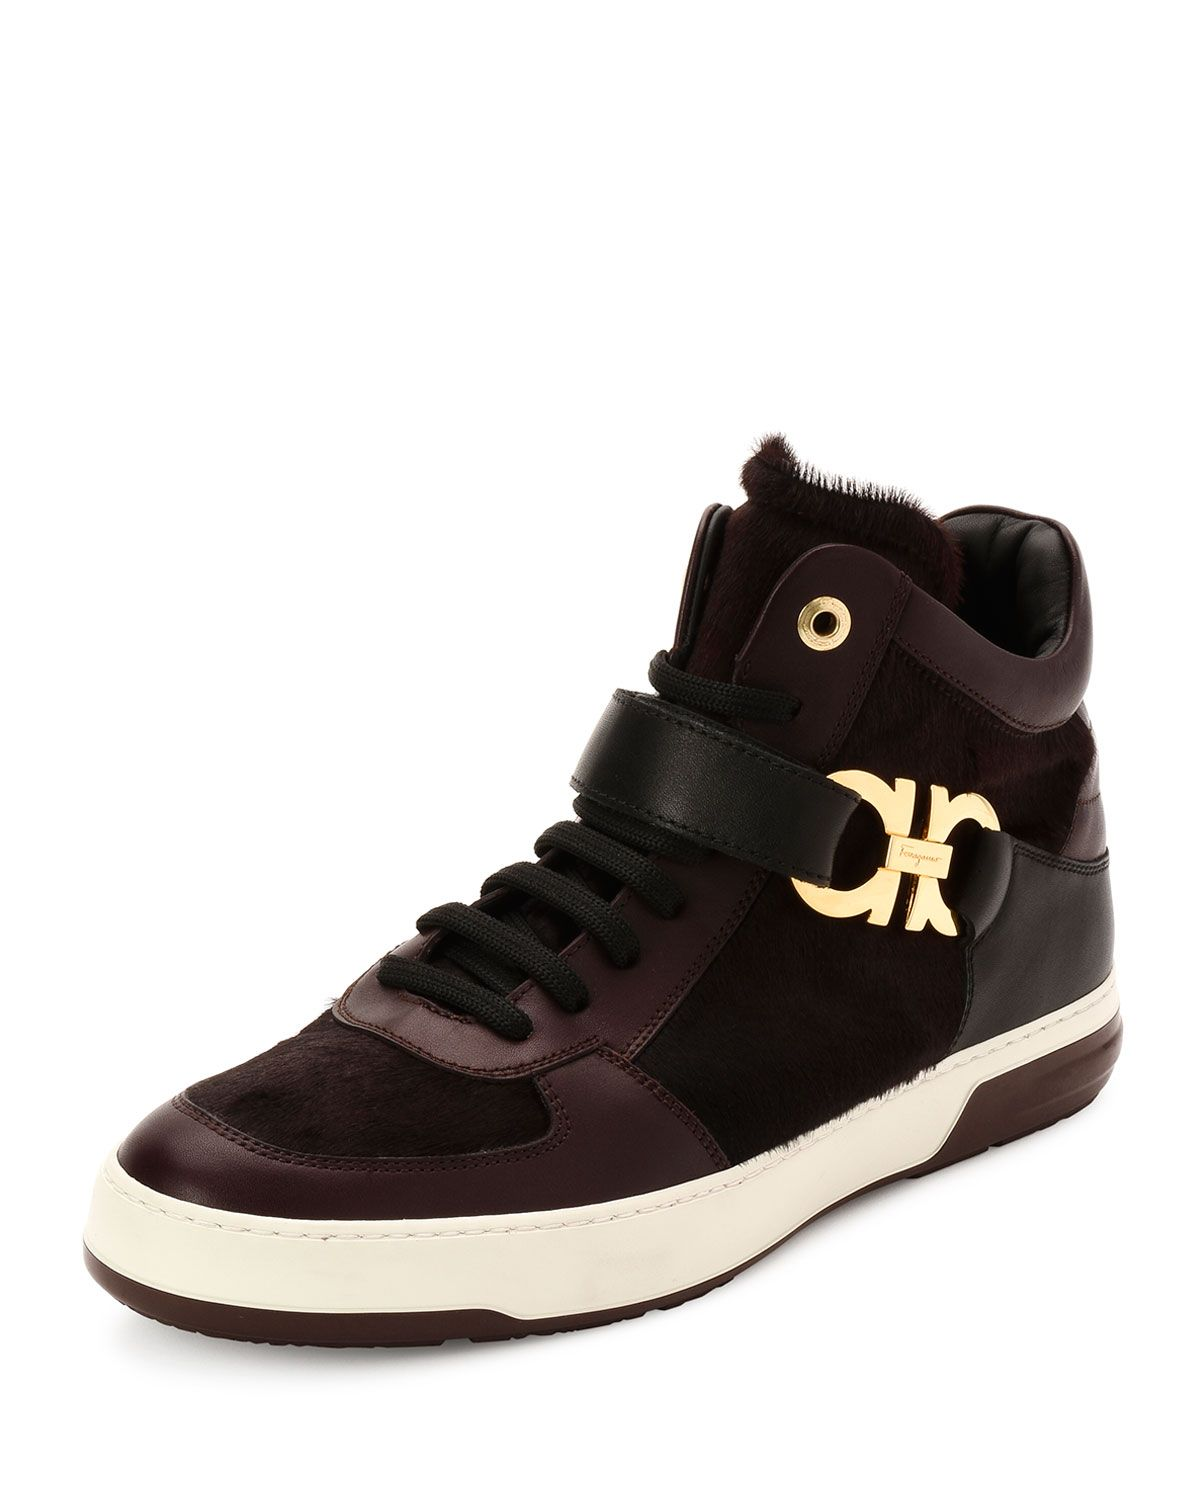 Salvatore Ferragamo Nayon 3 Calf Hair High-Top Sneaker, Wine (Red), Men s,  Size  43EU 9EE 2a1b91e8ad